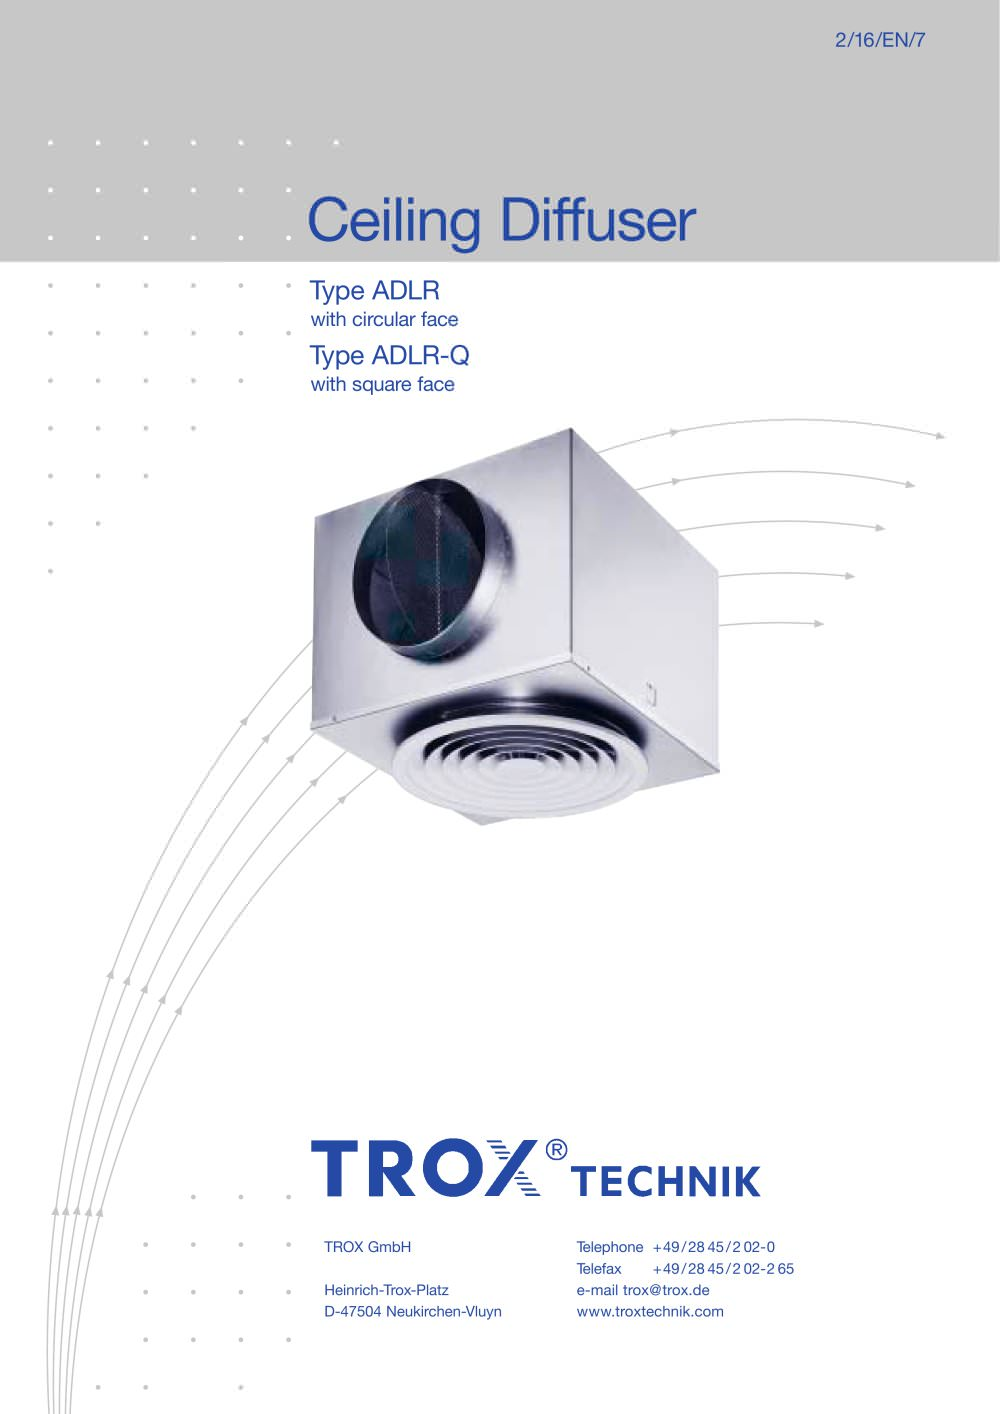 Ceiling Diffuser Type ADLR/ADLR-Q - 1 / 14 Pages